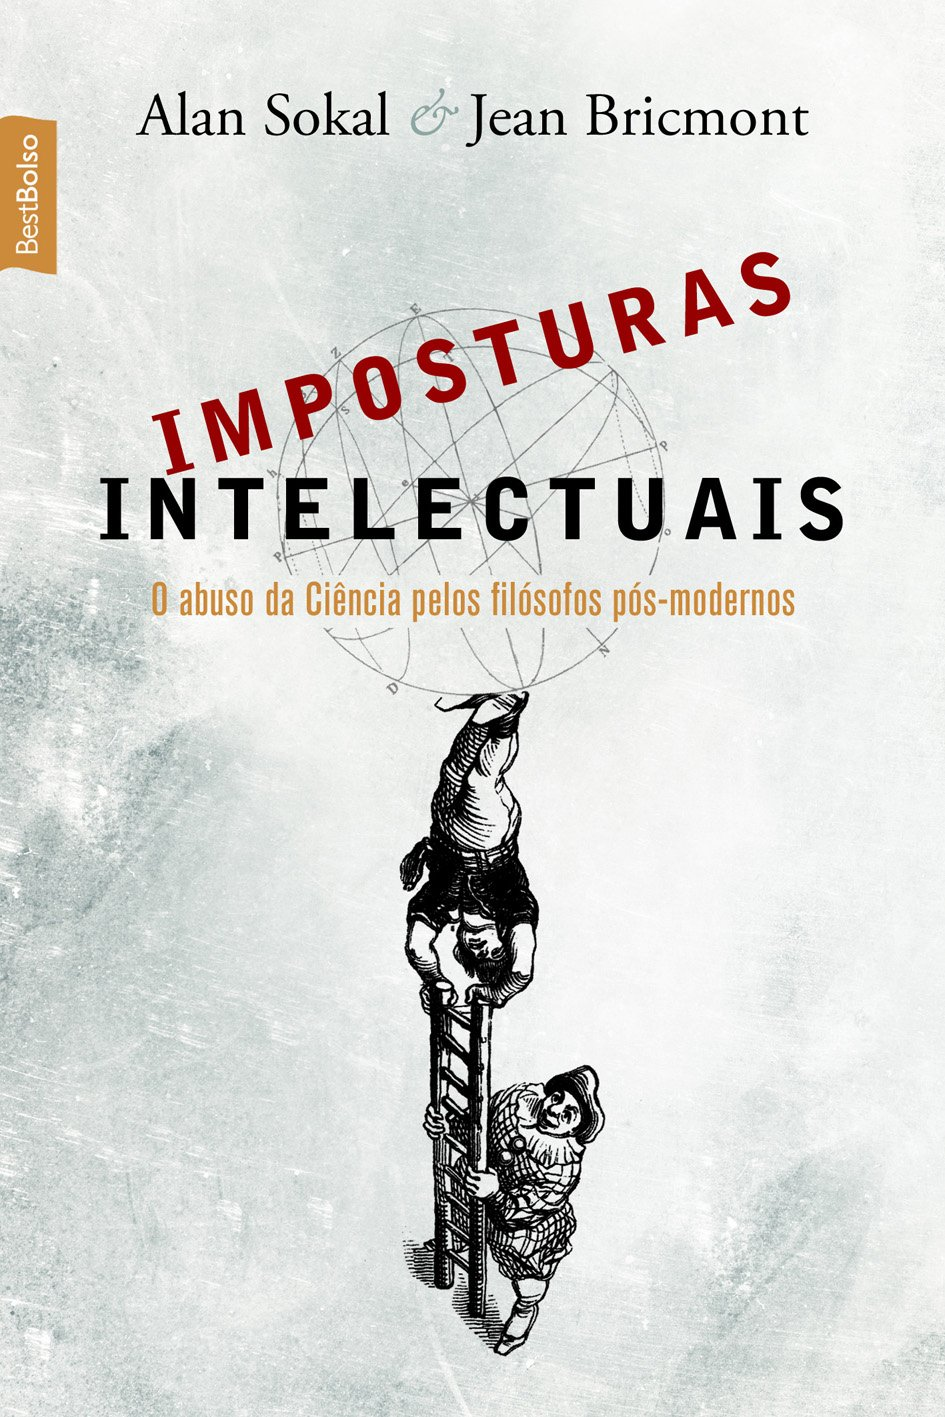 IMPOSTURAS INTELECTUAIS SOKAL DOWNLOAD